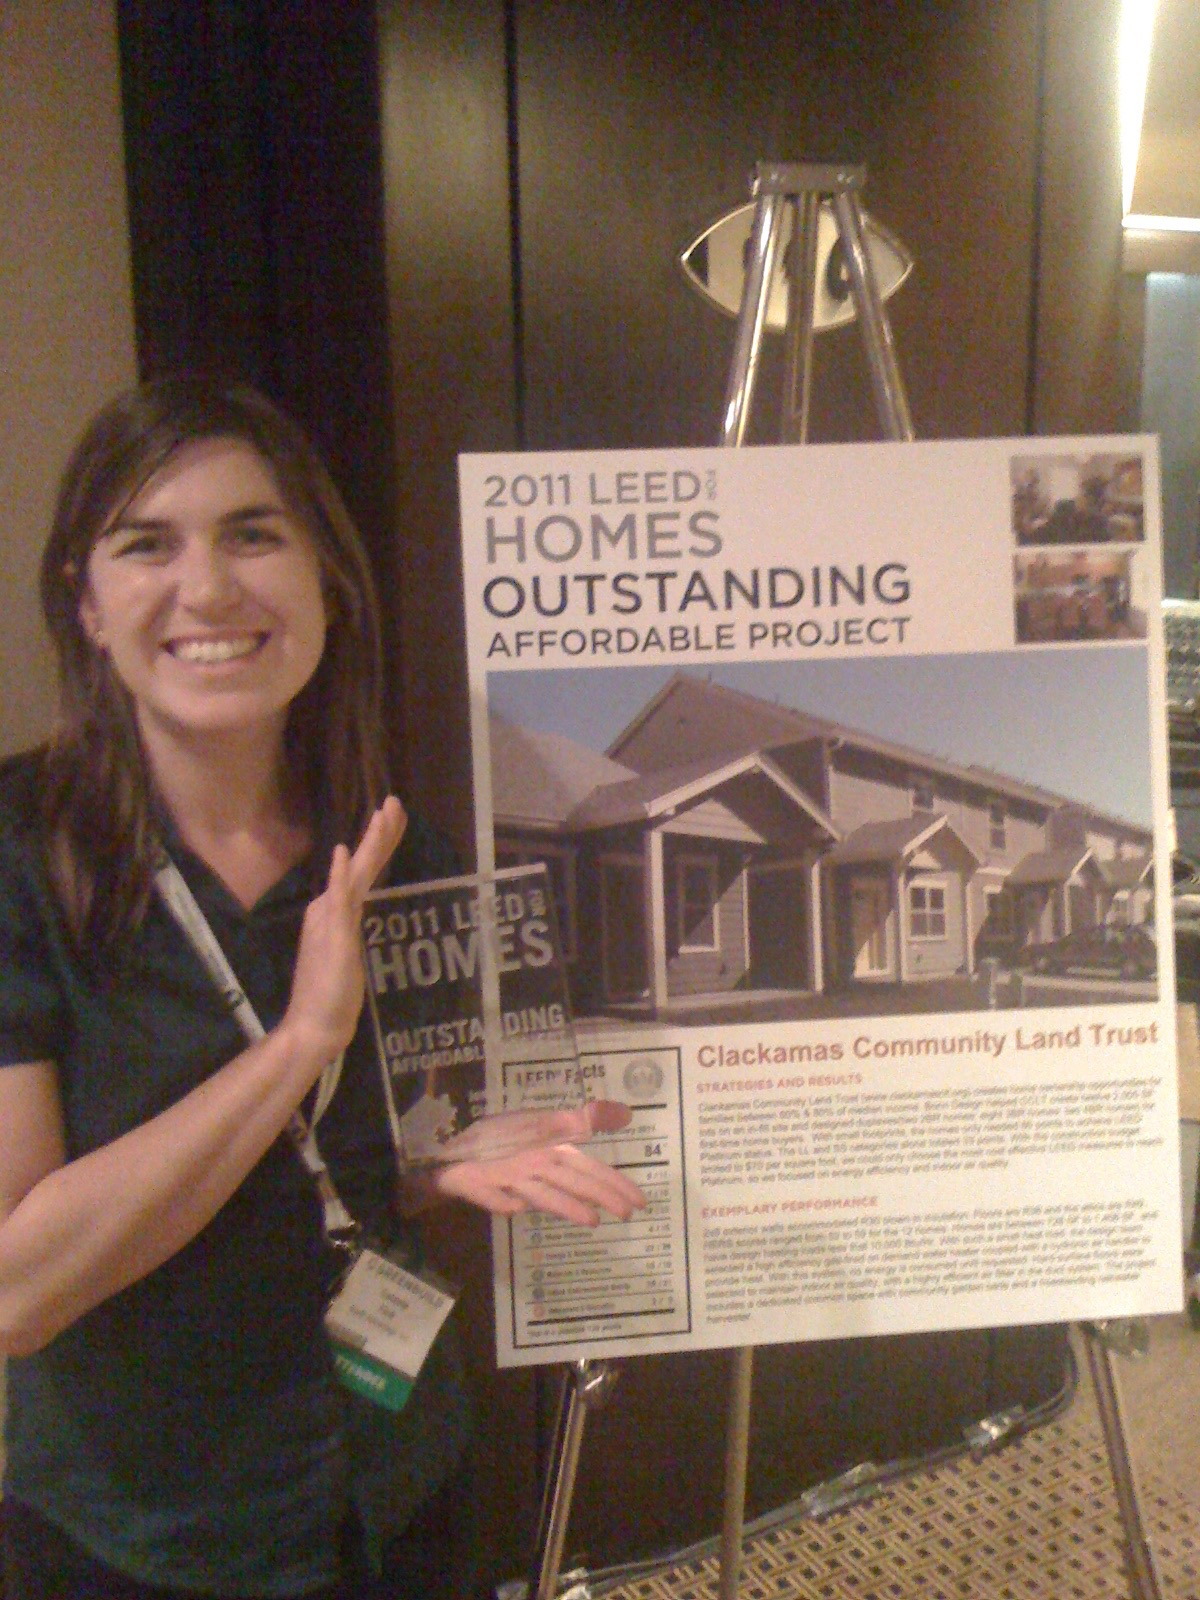 Receiving award at GreenBuild for completed project.